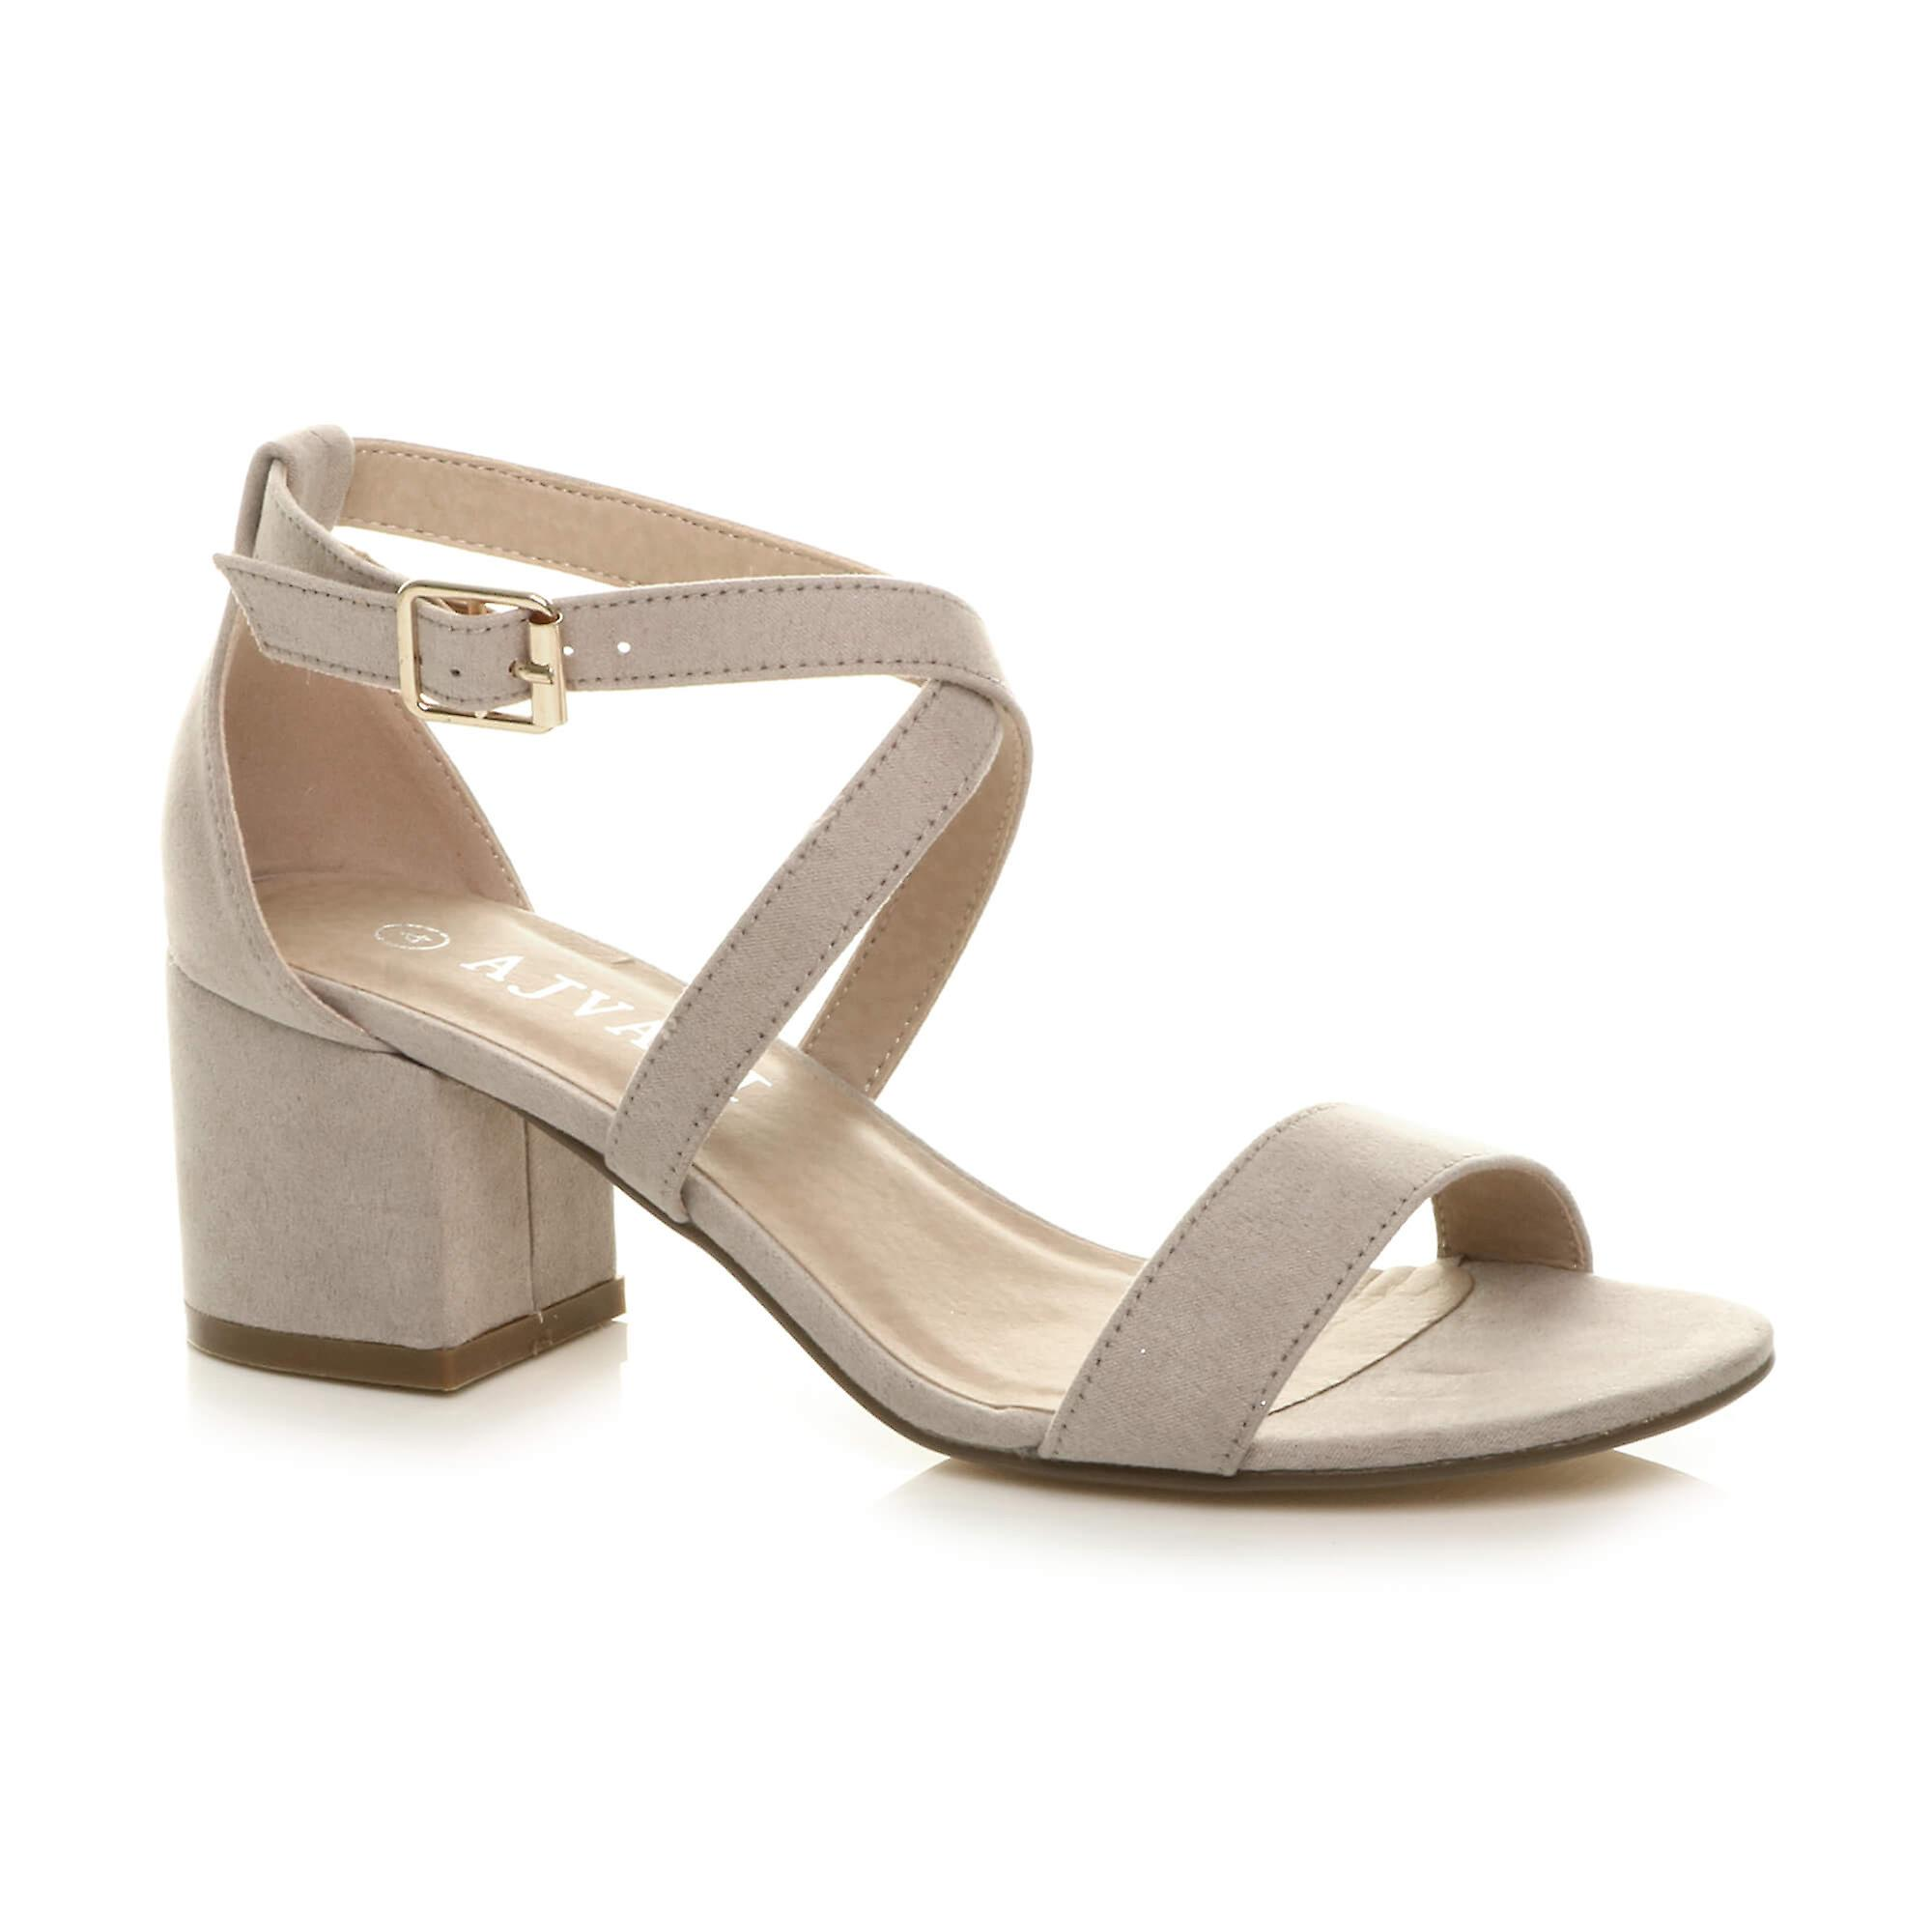 Ajvani womens mid low block heel peep toe ankle strap strappy party sandals HVAdh